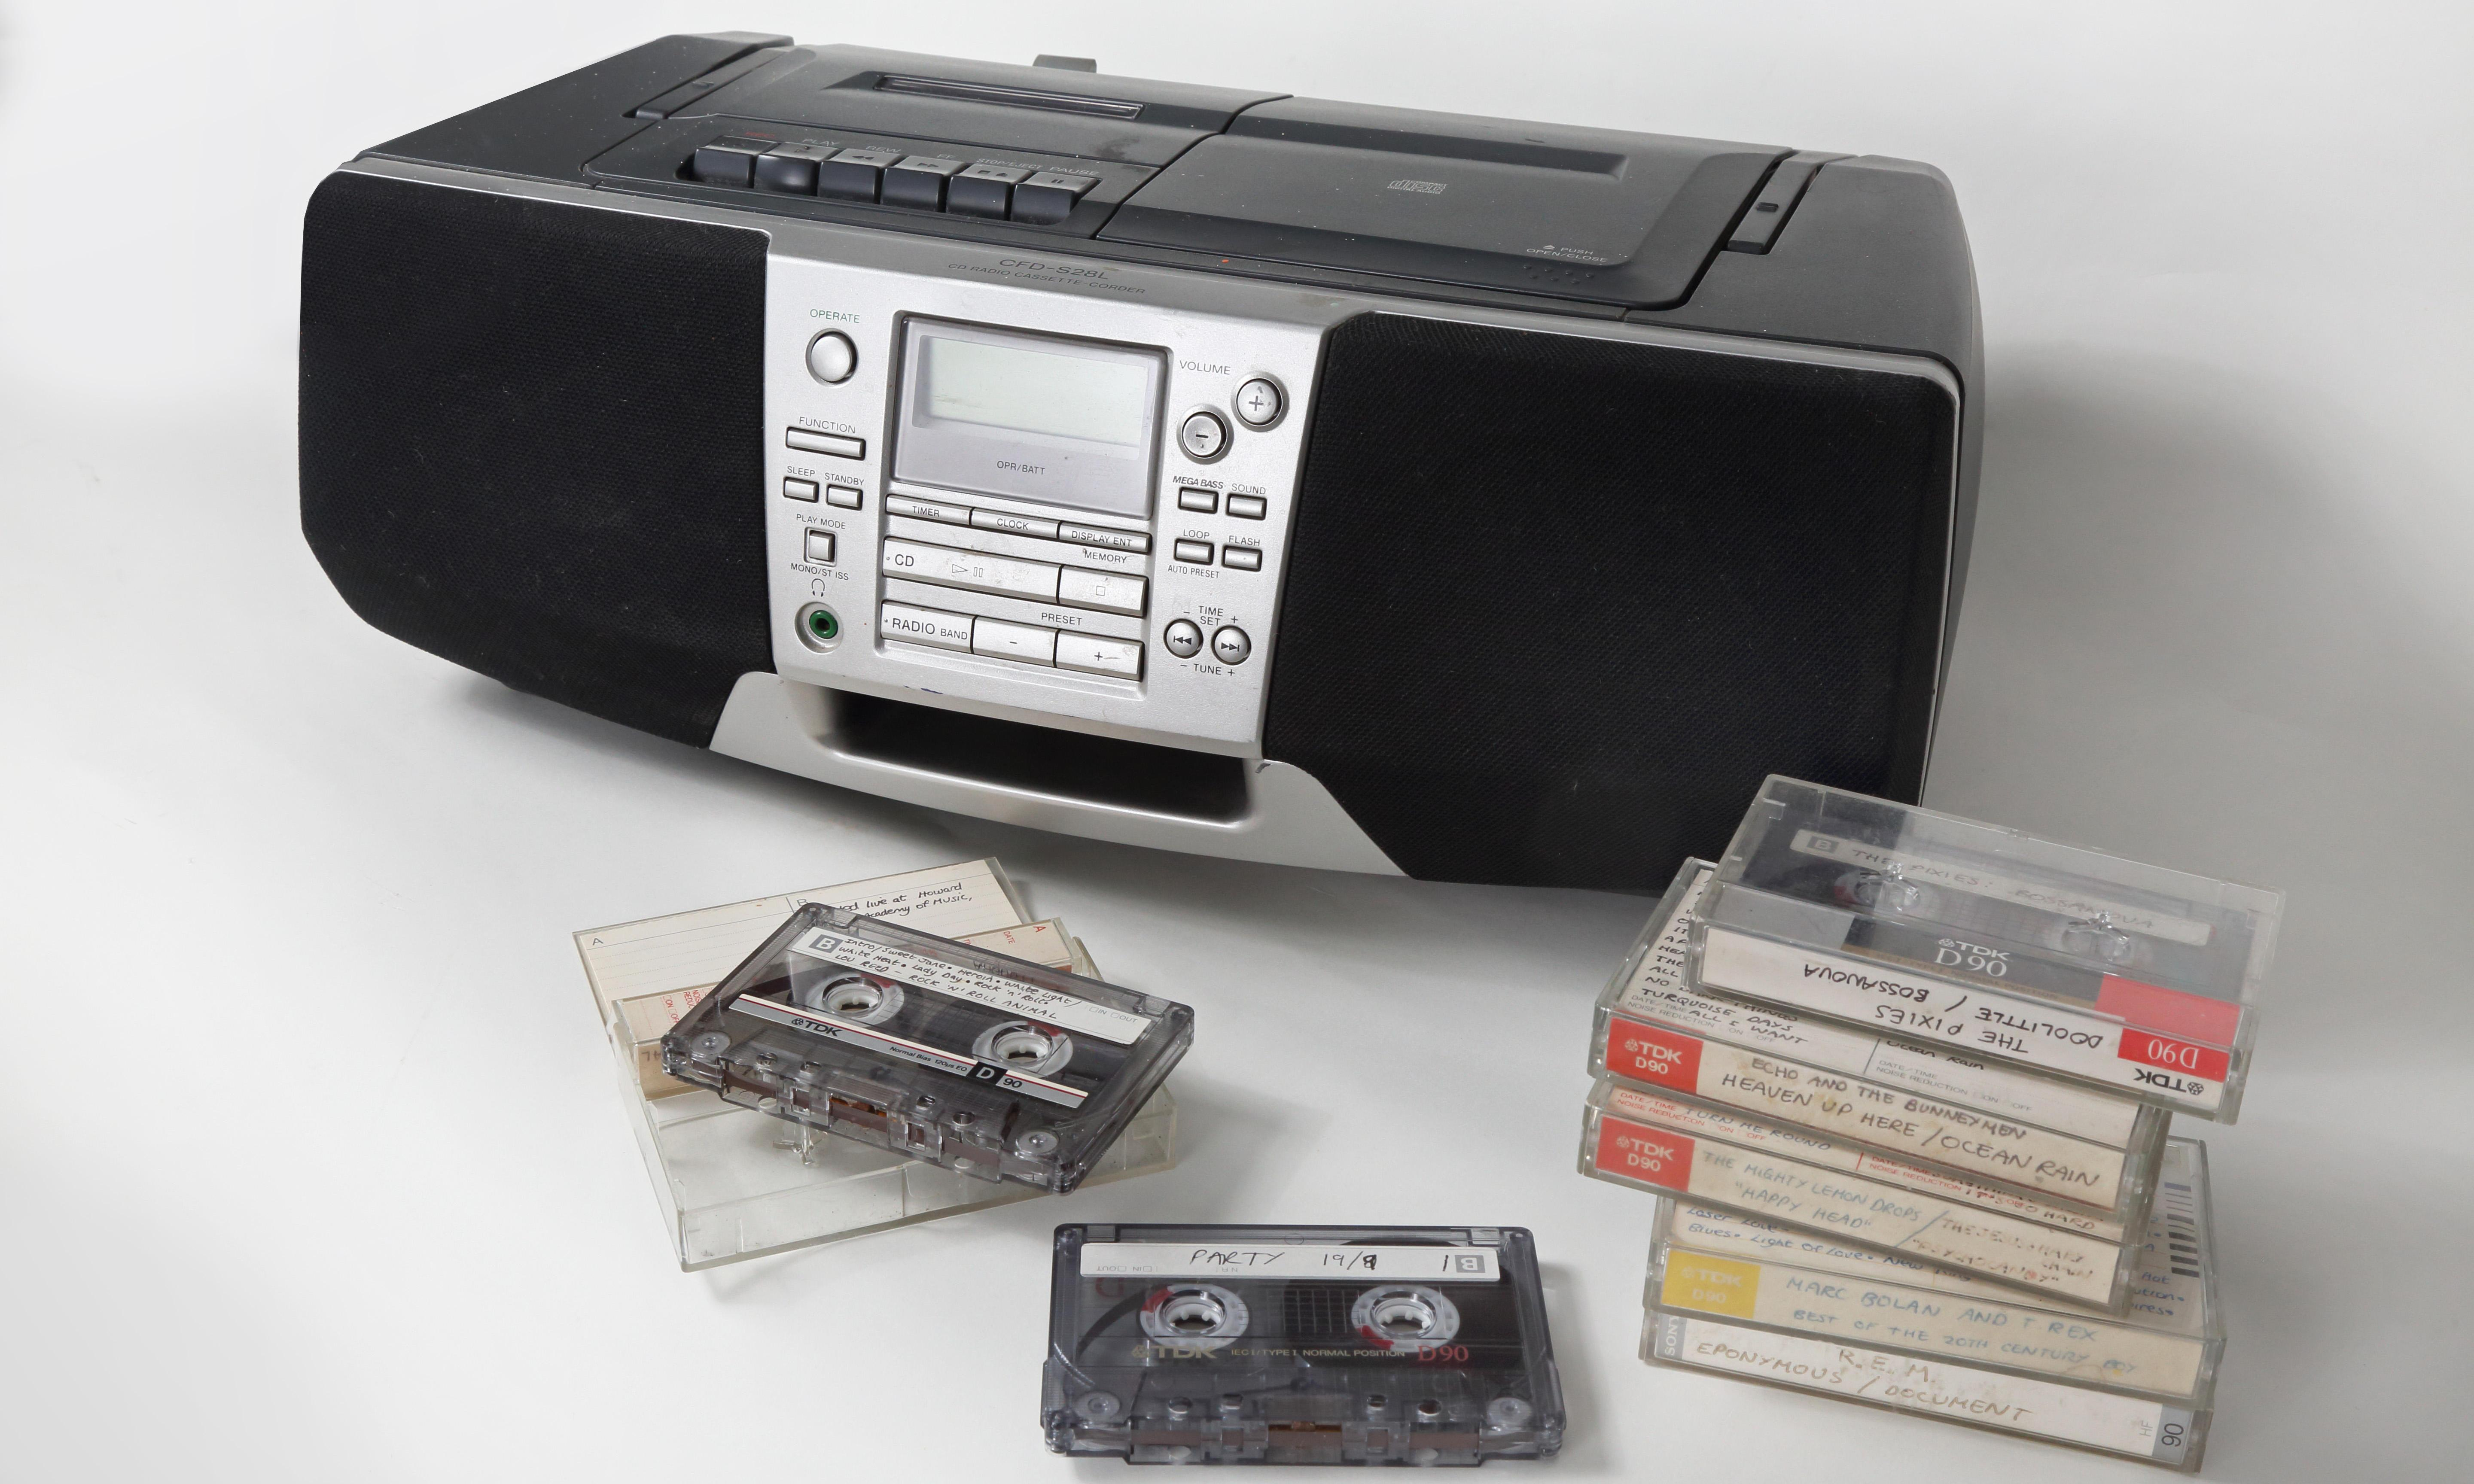 Back in the loop: why cassette tapes became fashionable again